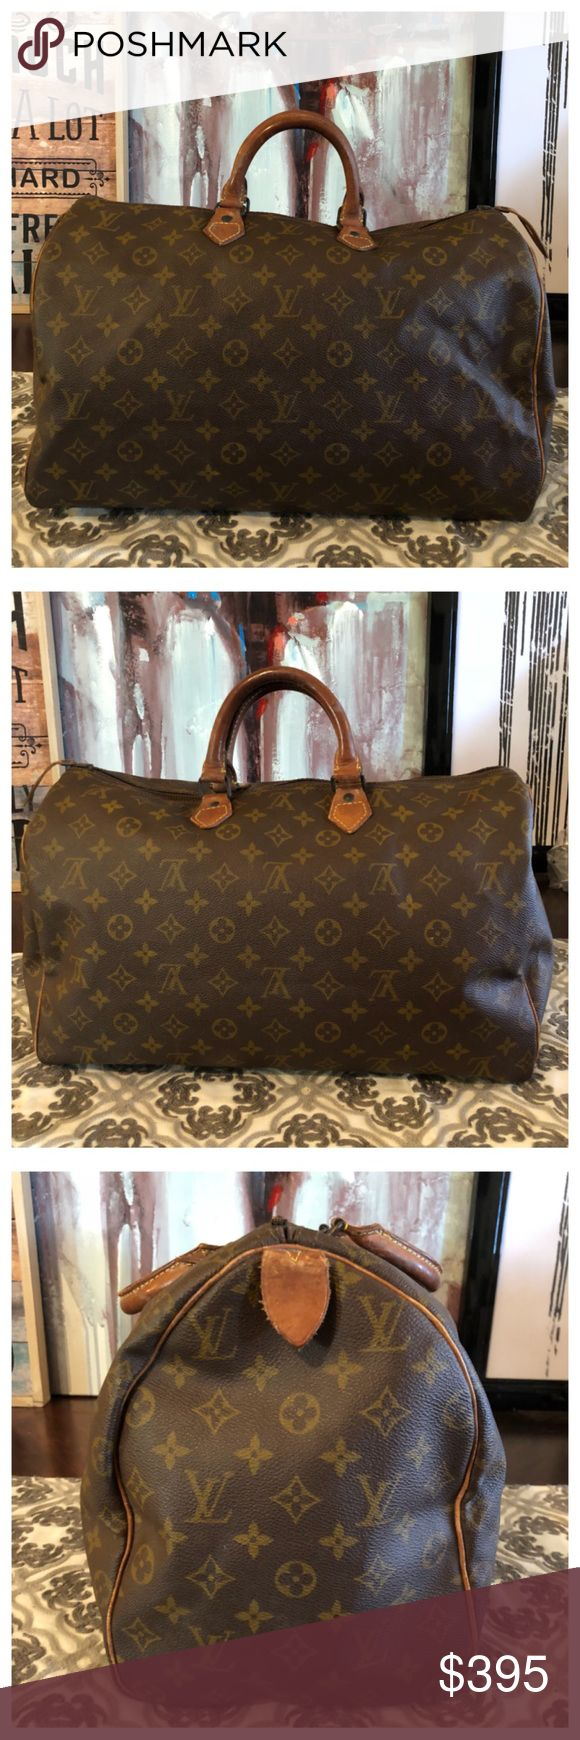 """AUTHENTIC LOUIS VUITTON SPEEDY 40 100% Authentic Louis Vuitton Speedy 40. Monogram canvas has no scratches or tears. Vachetta leather has darkened and shows wear and scratches. Hardware has tarnished. No exposed piping on corners 👍🏼 Zipper works properly. Inside is roomy and in good shape. Minor storage smell. Comes with lock no key. W15.7""""xH10.2""""xD7.4"""" No trades Louis Vuitton Bags Satchels"""